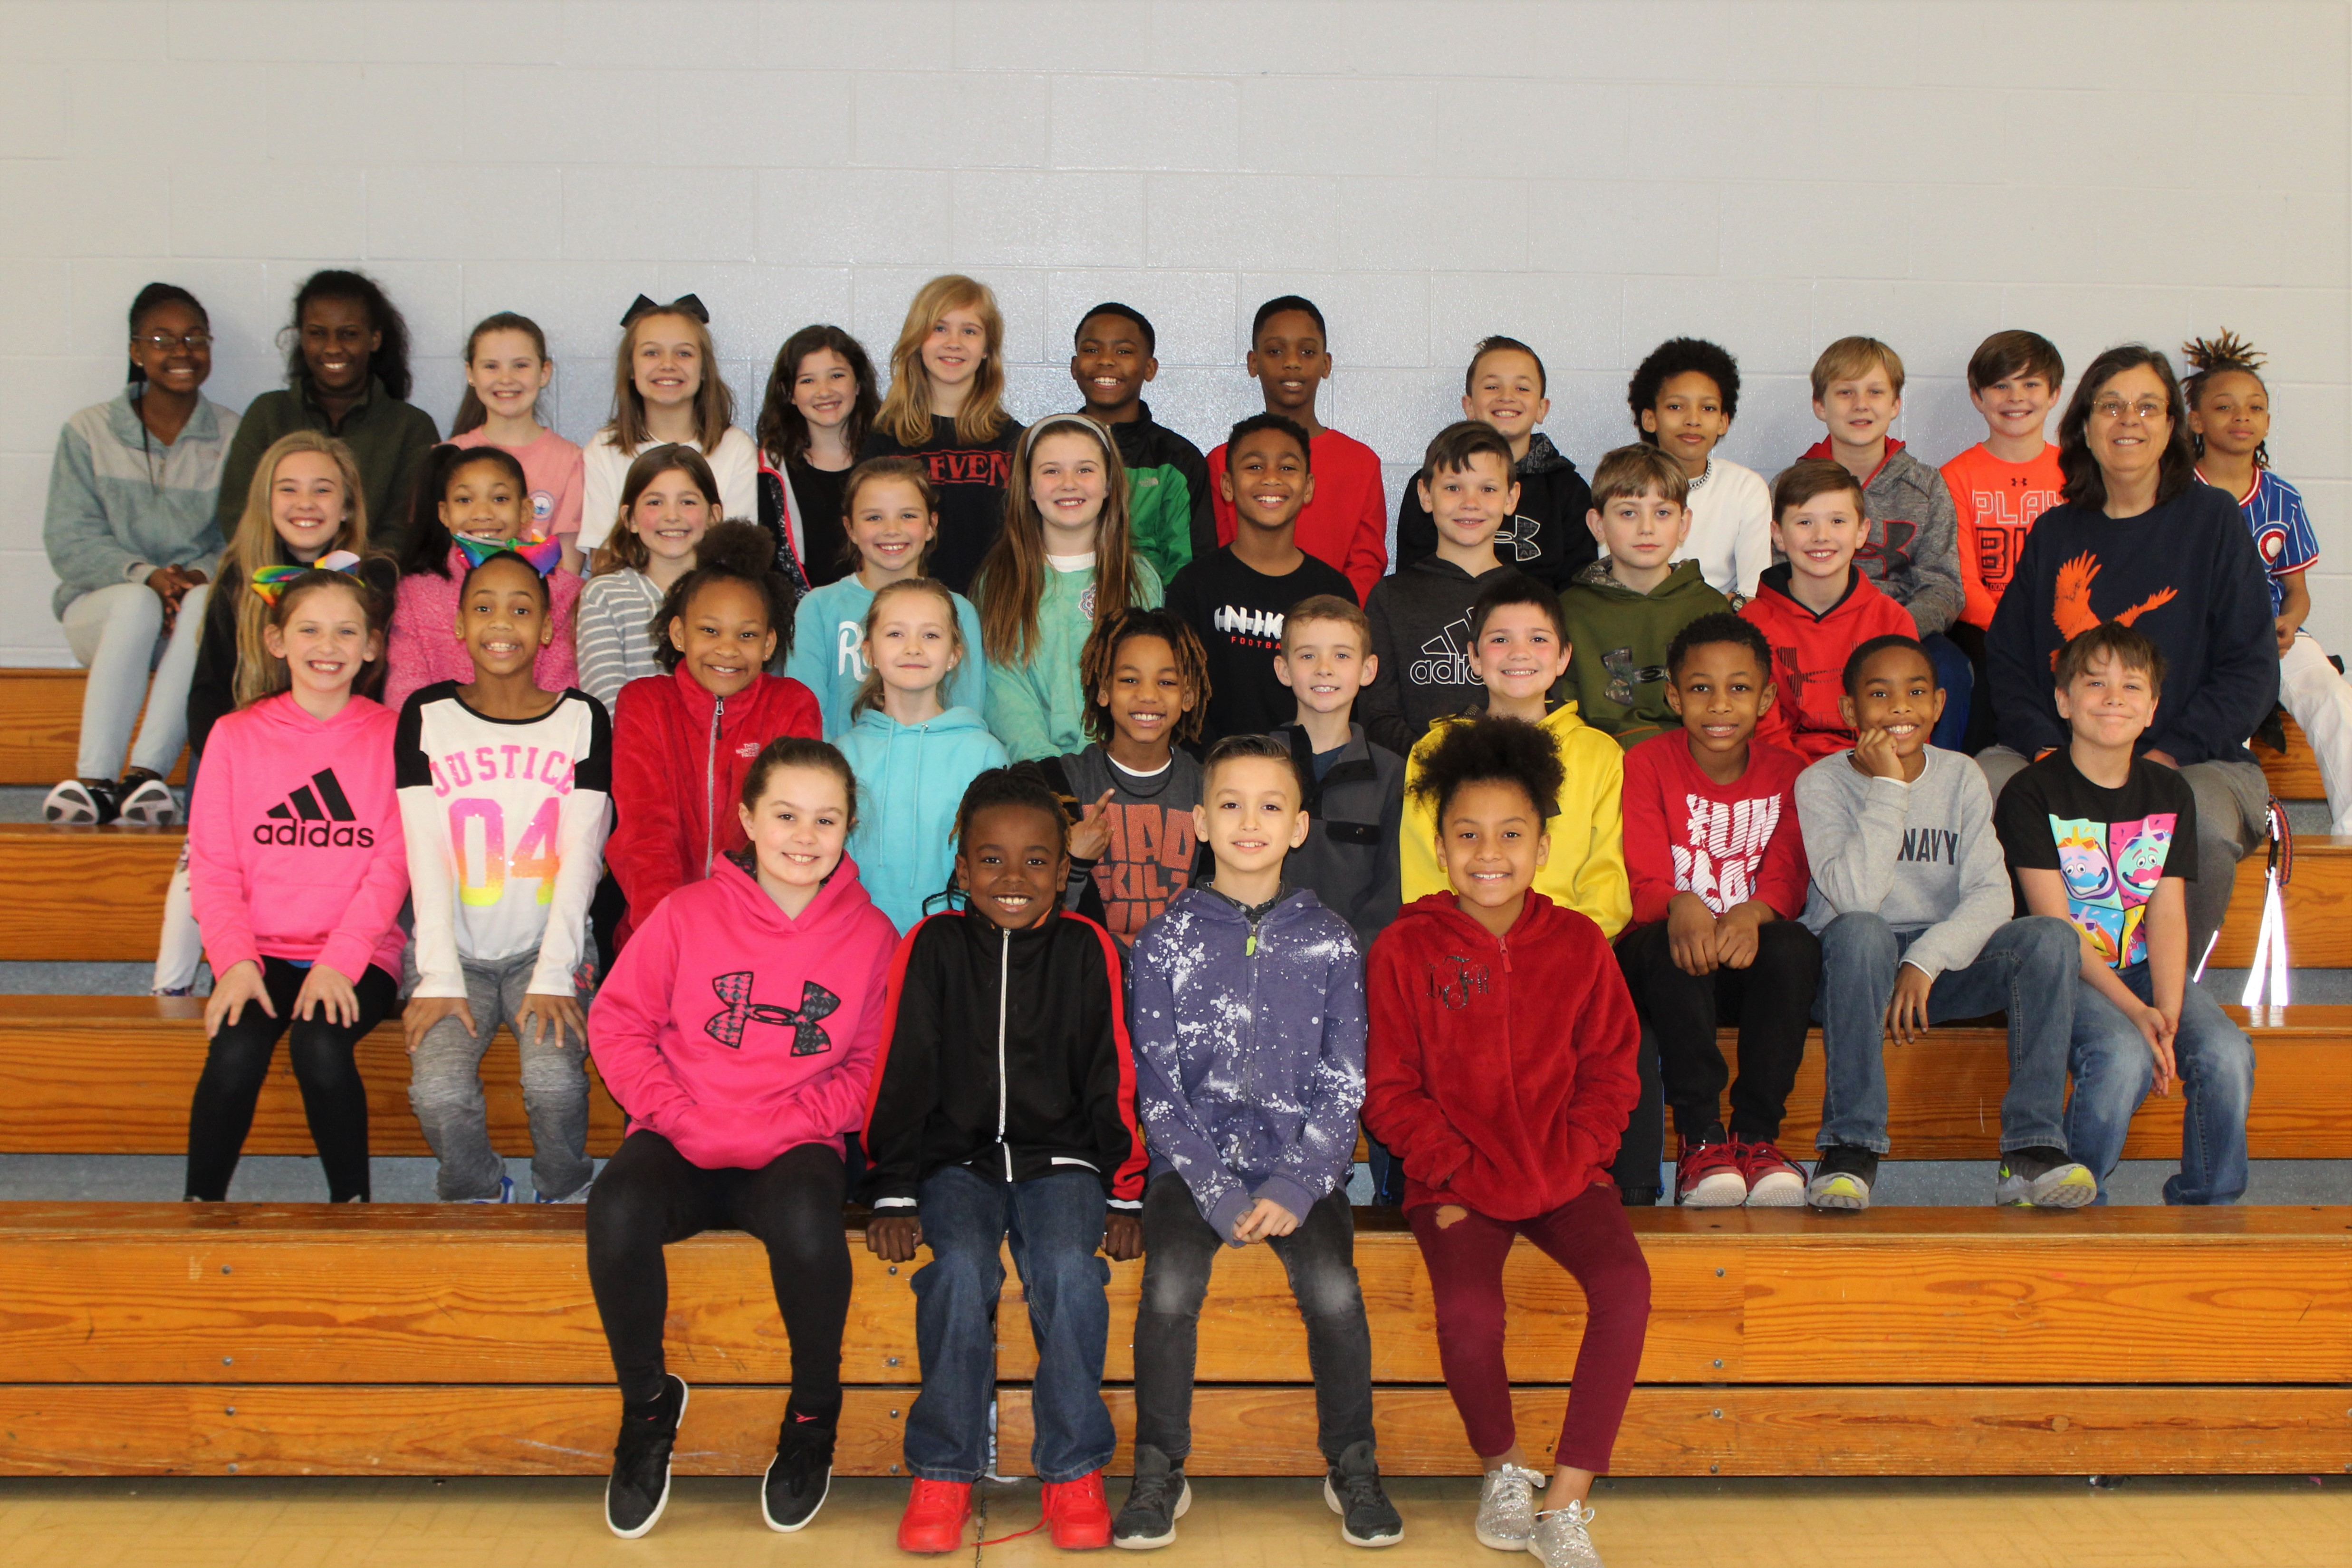 group photo of track team students